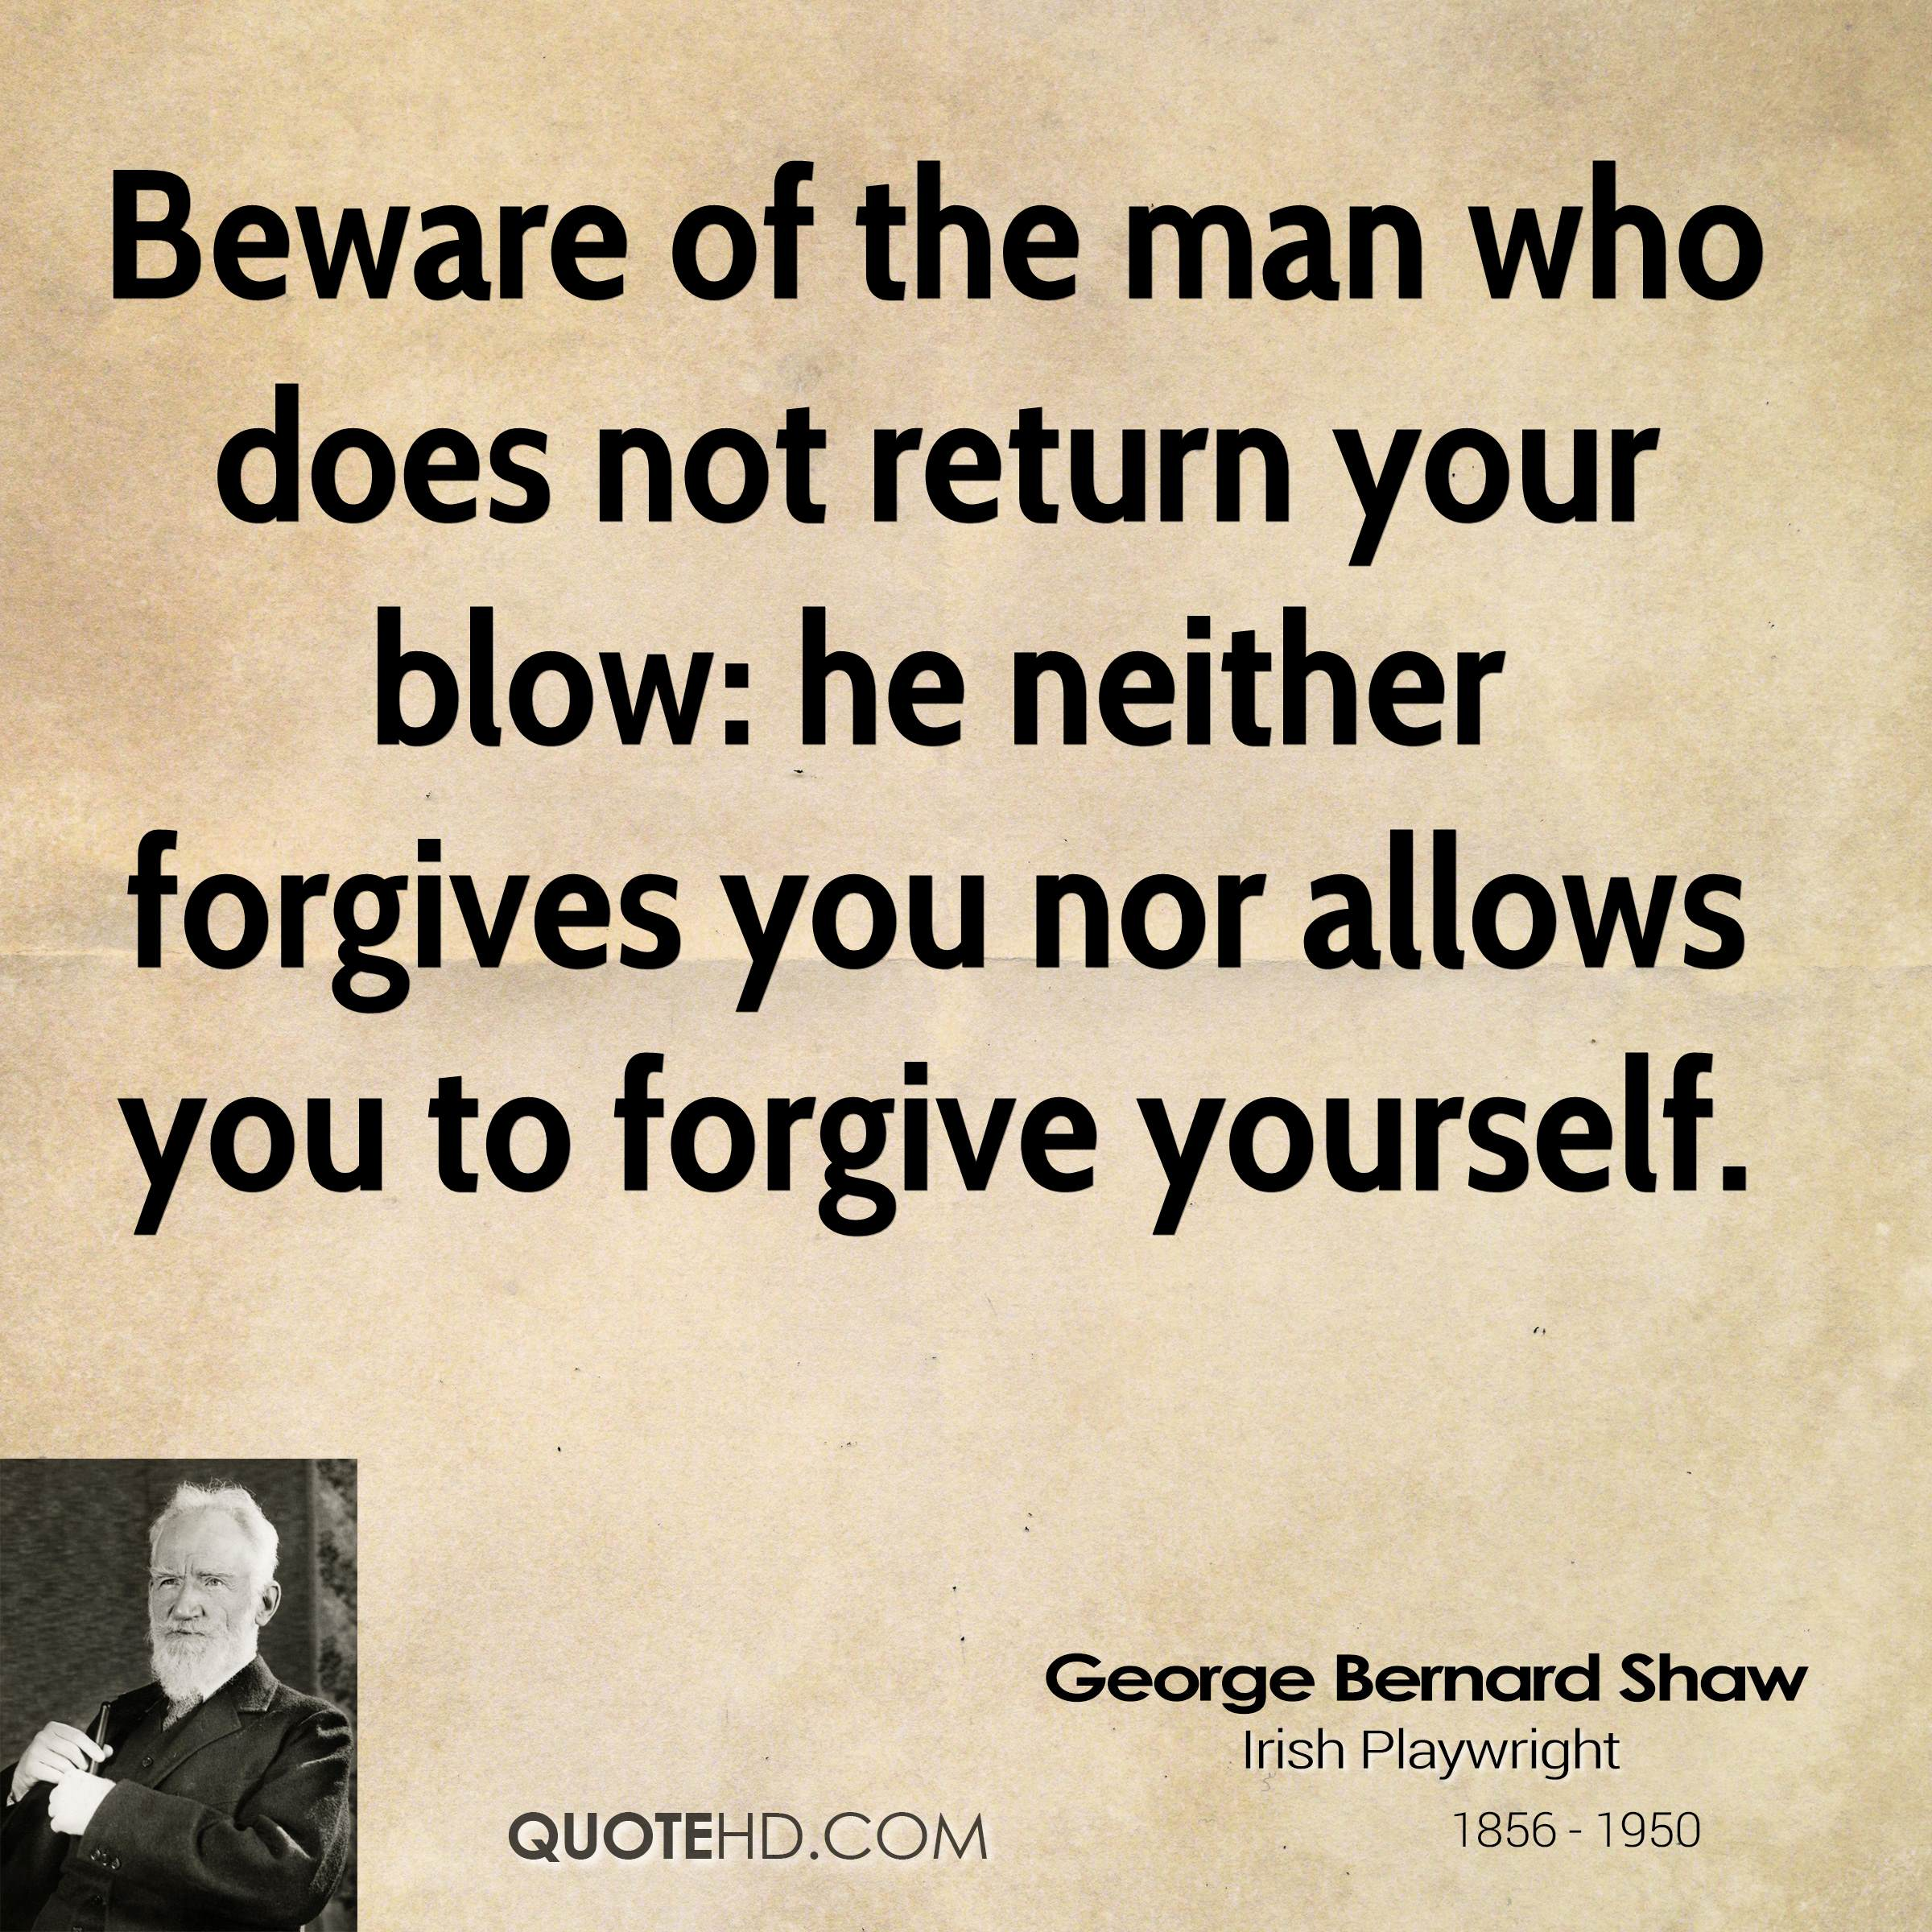 Beware of the man who does not return your blow: he neither forgives you nor allows you to forgive yourself.